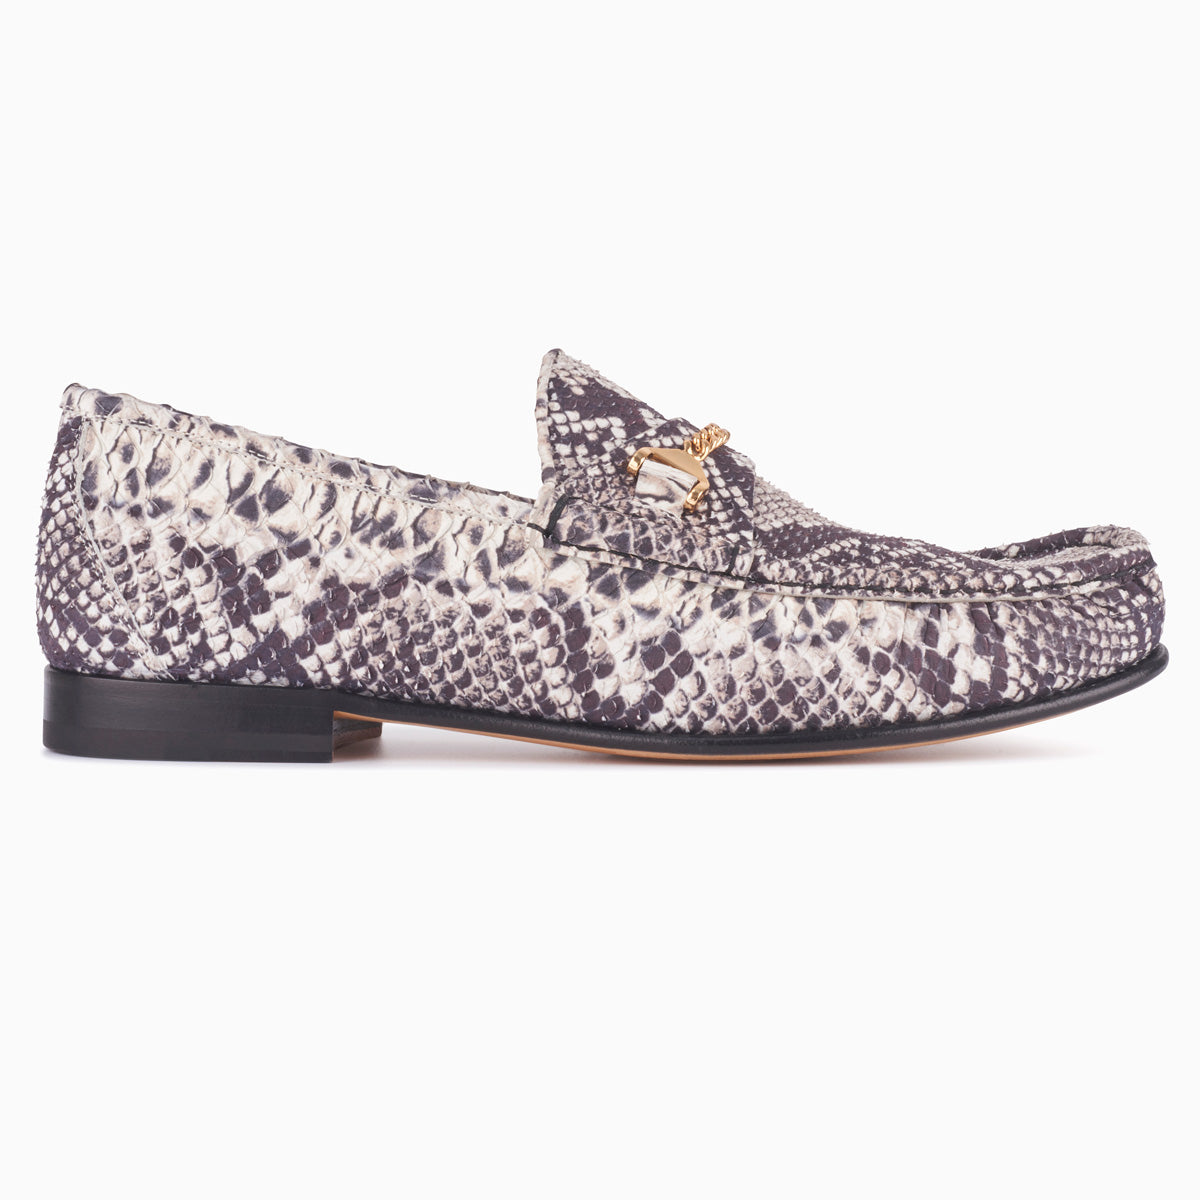 Hyusto Mick Moccasin rock python printed leather side view